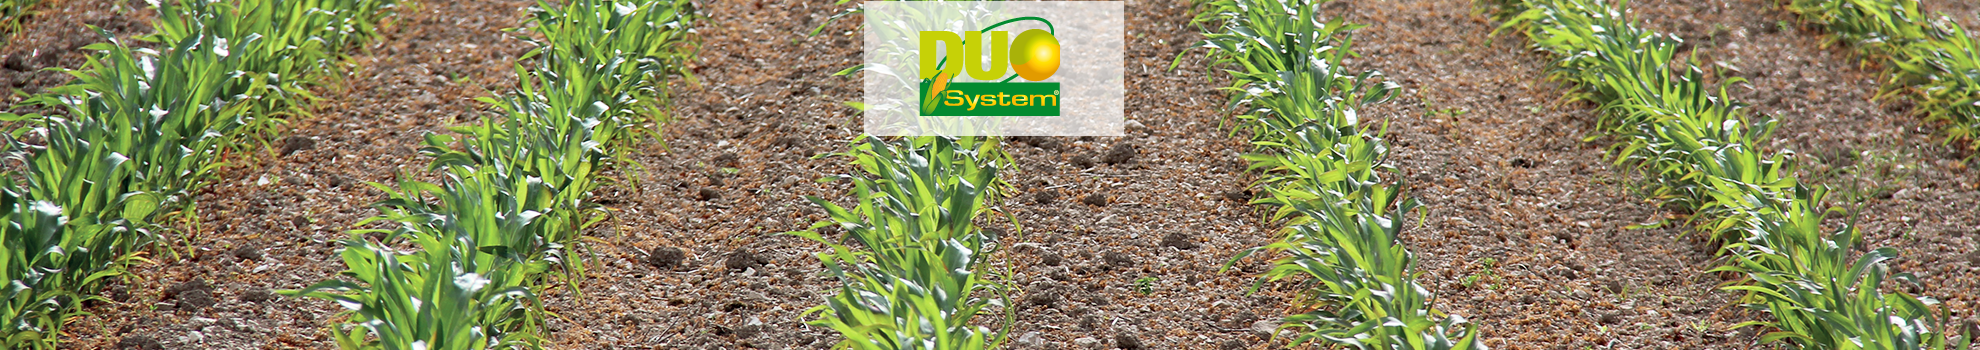 DUO SYSTEM®